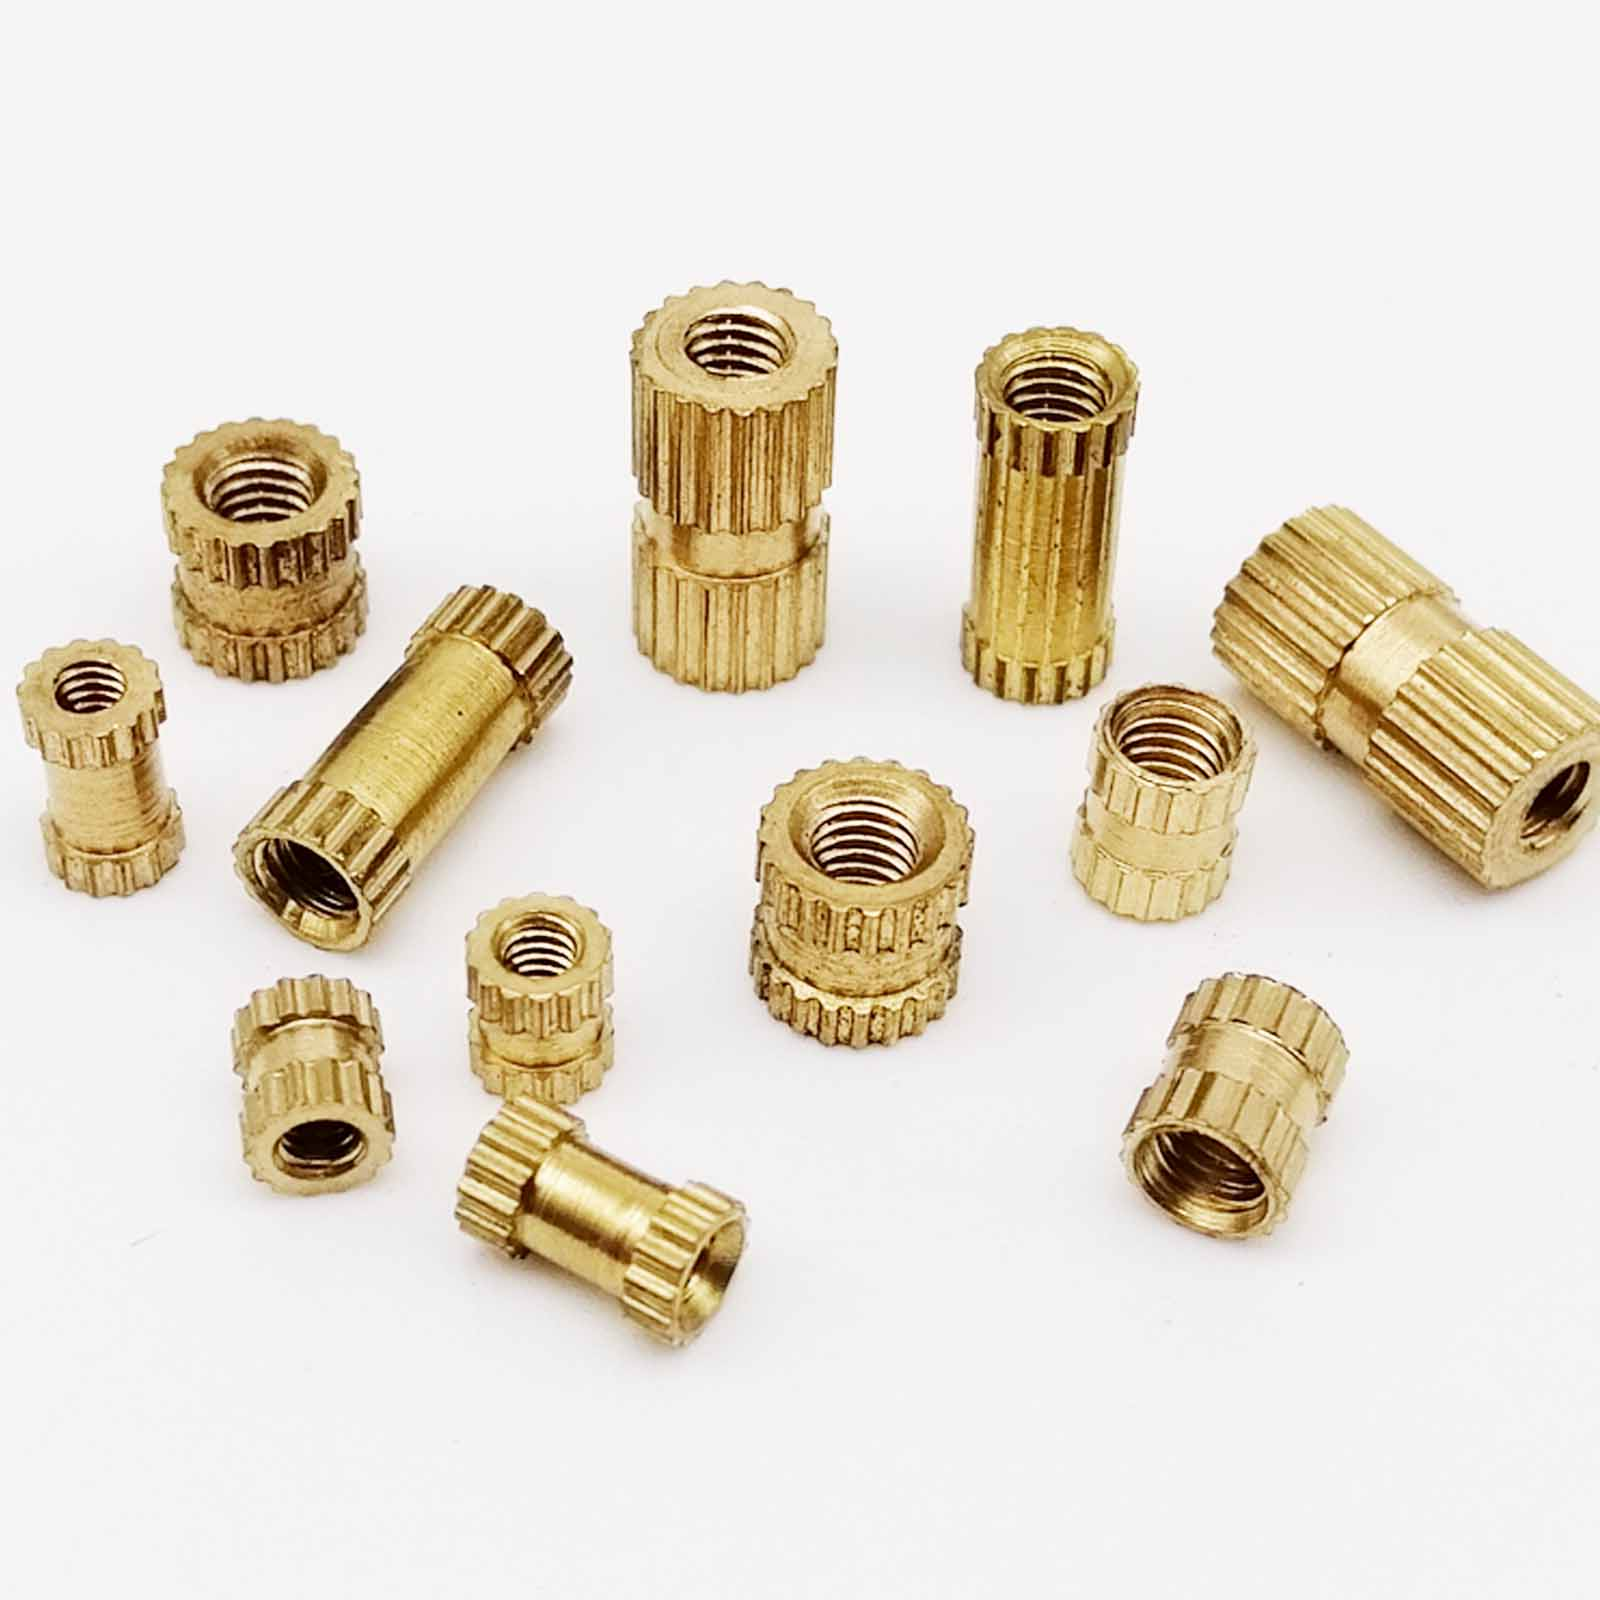 10//24 SOLID BRASS KNURLED THUMB NUTS Lot of 25 Pcs.